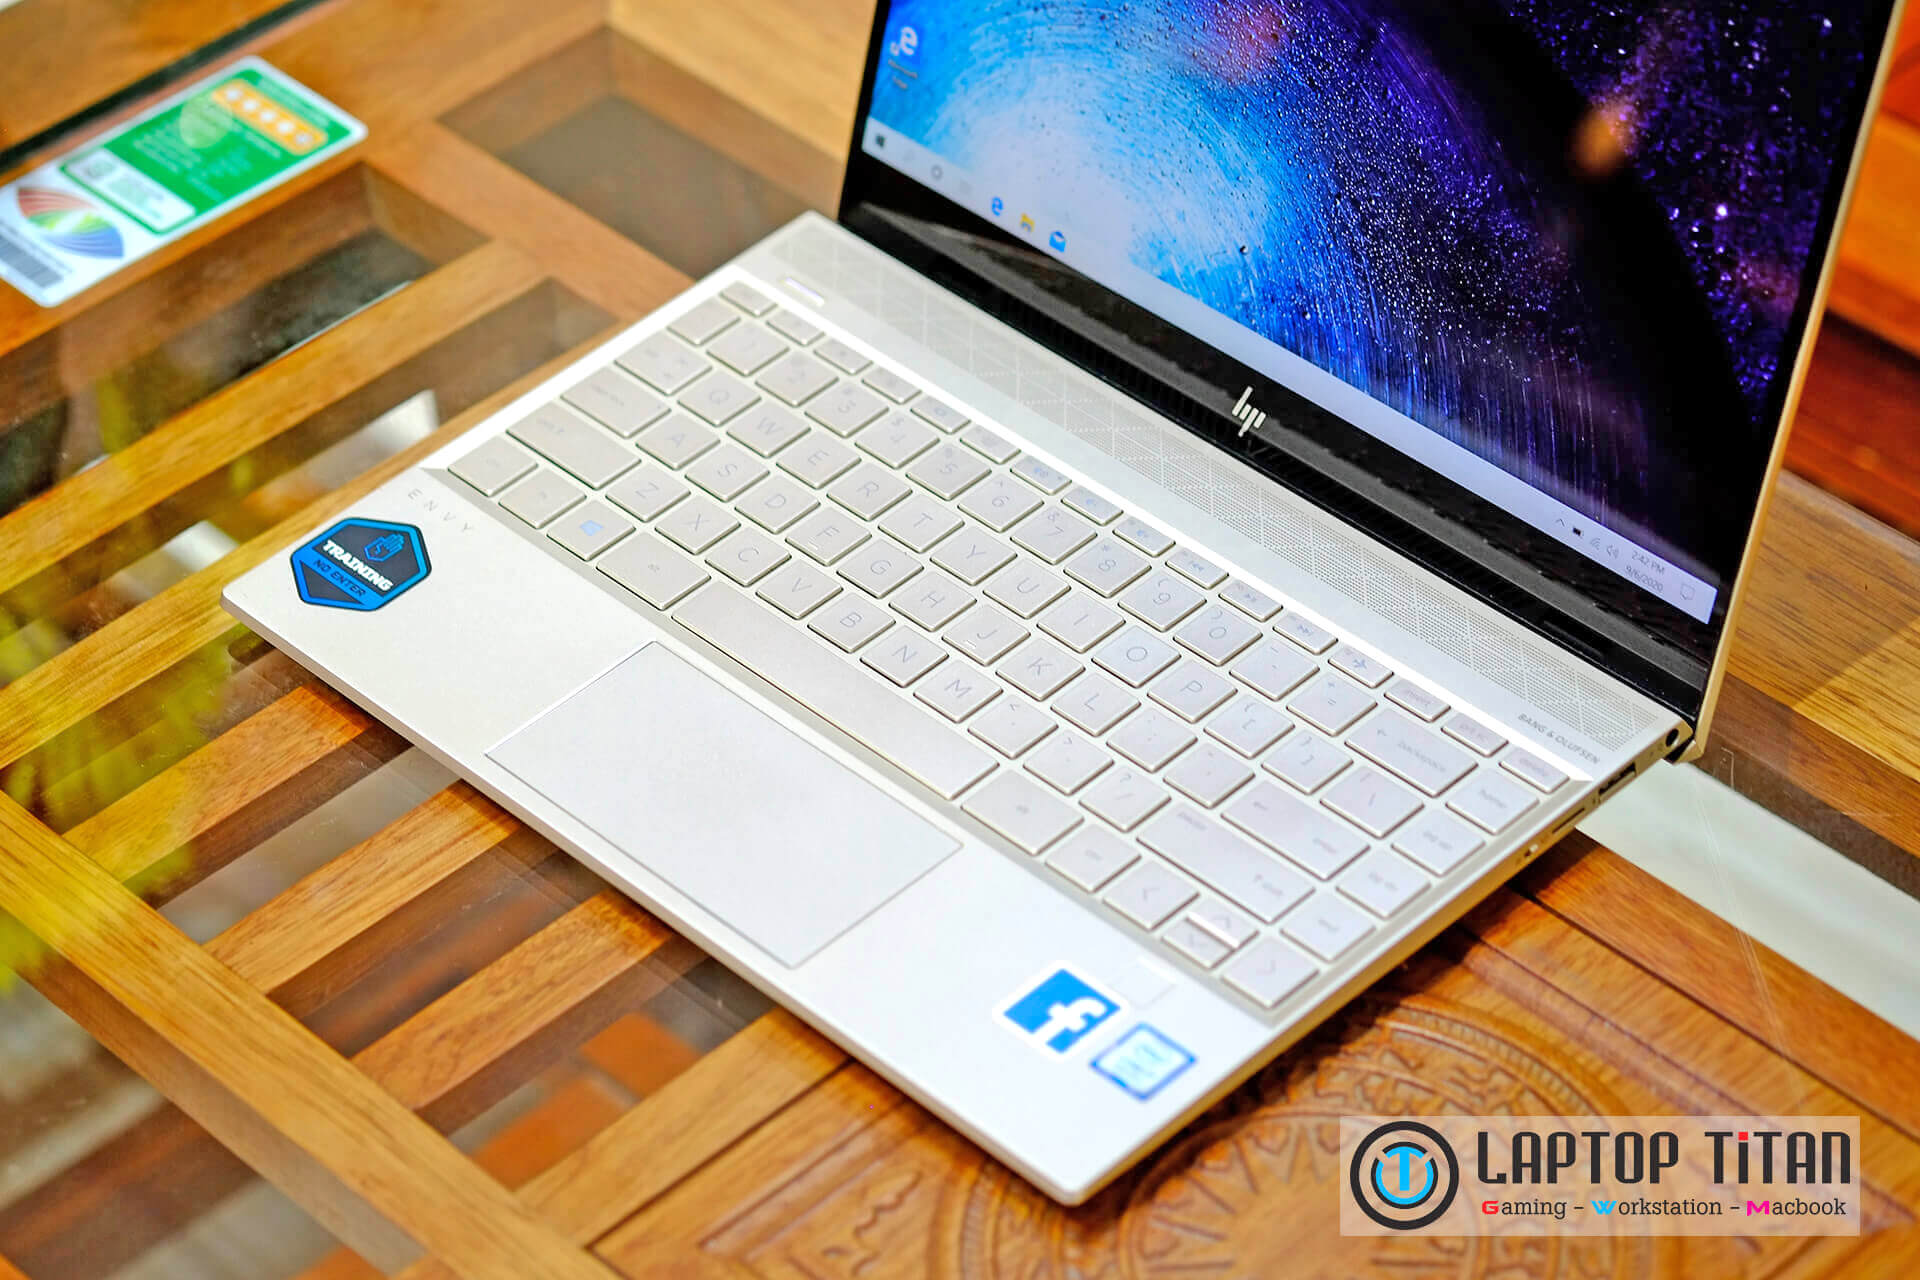 HP Envy 13 Aq0027Tu 003